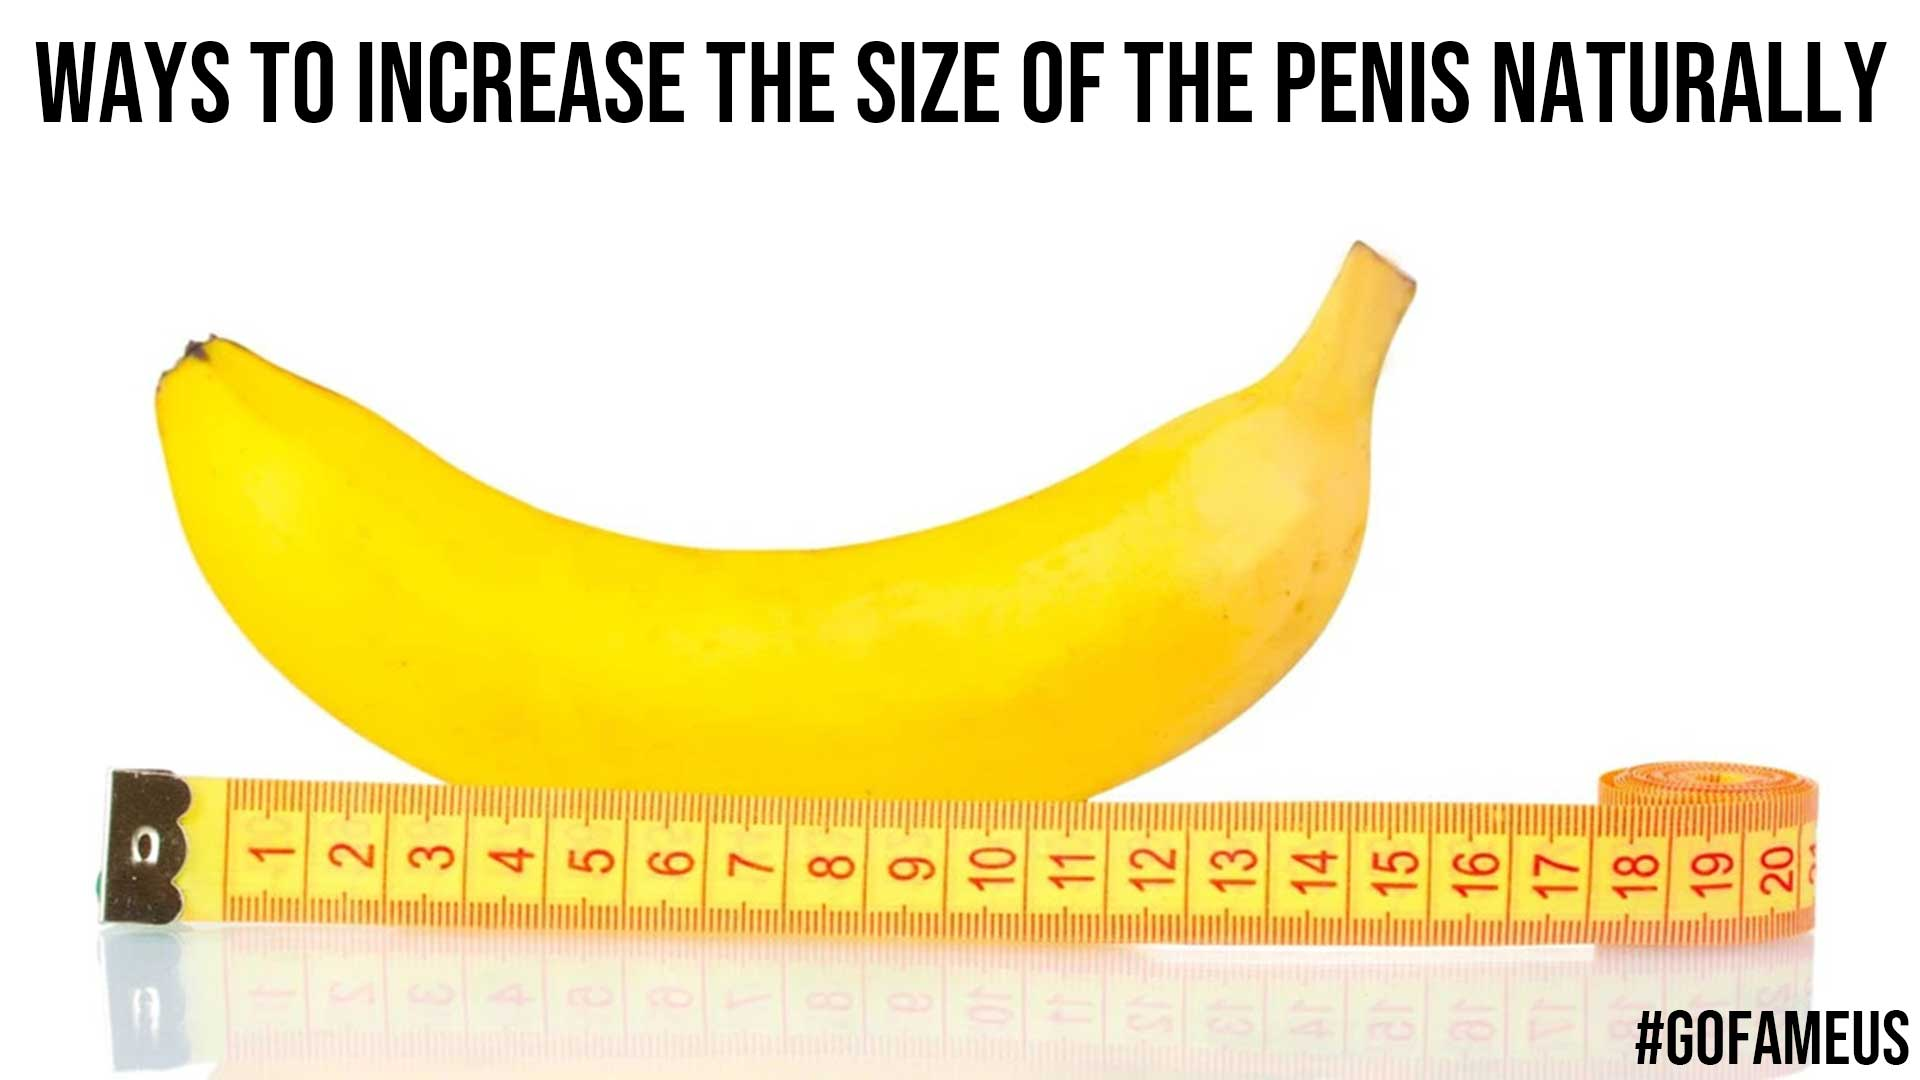 Ways to Increase the Size of the Penis Naturally